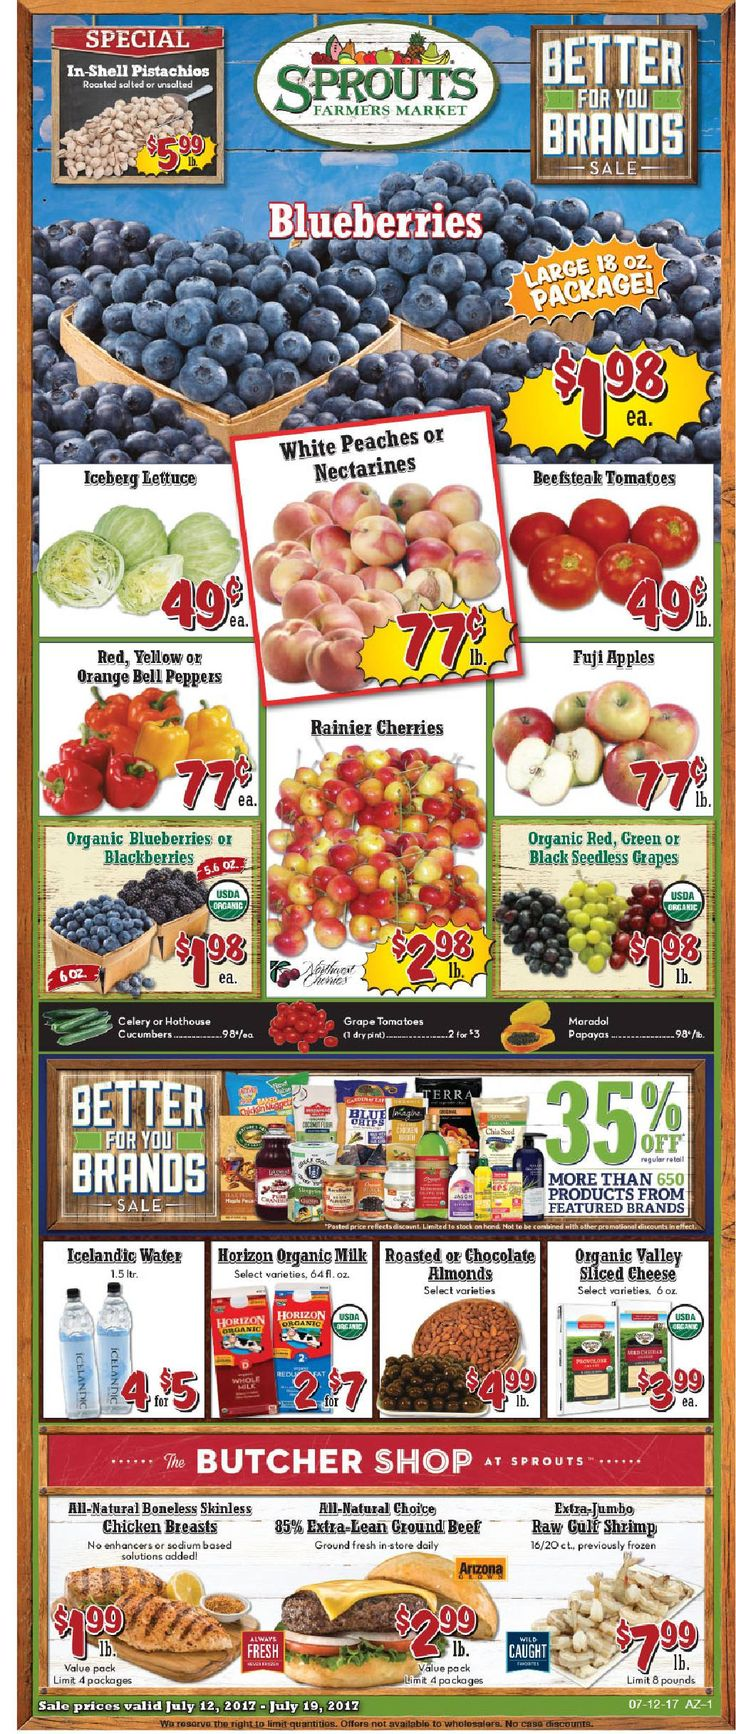 Sprouts Weekly ad July 12 – 20, 2017 – Do you know what's in and what's hot in the sprouts for this week? If you haven't, using the store's weekly advertisements will be your great guide. Here are Sprouts ad this week 7/12/2017 – 7/20/2017: